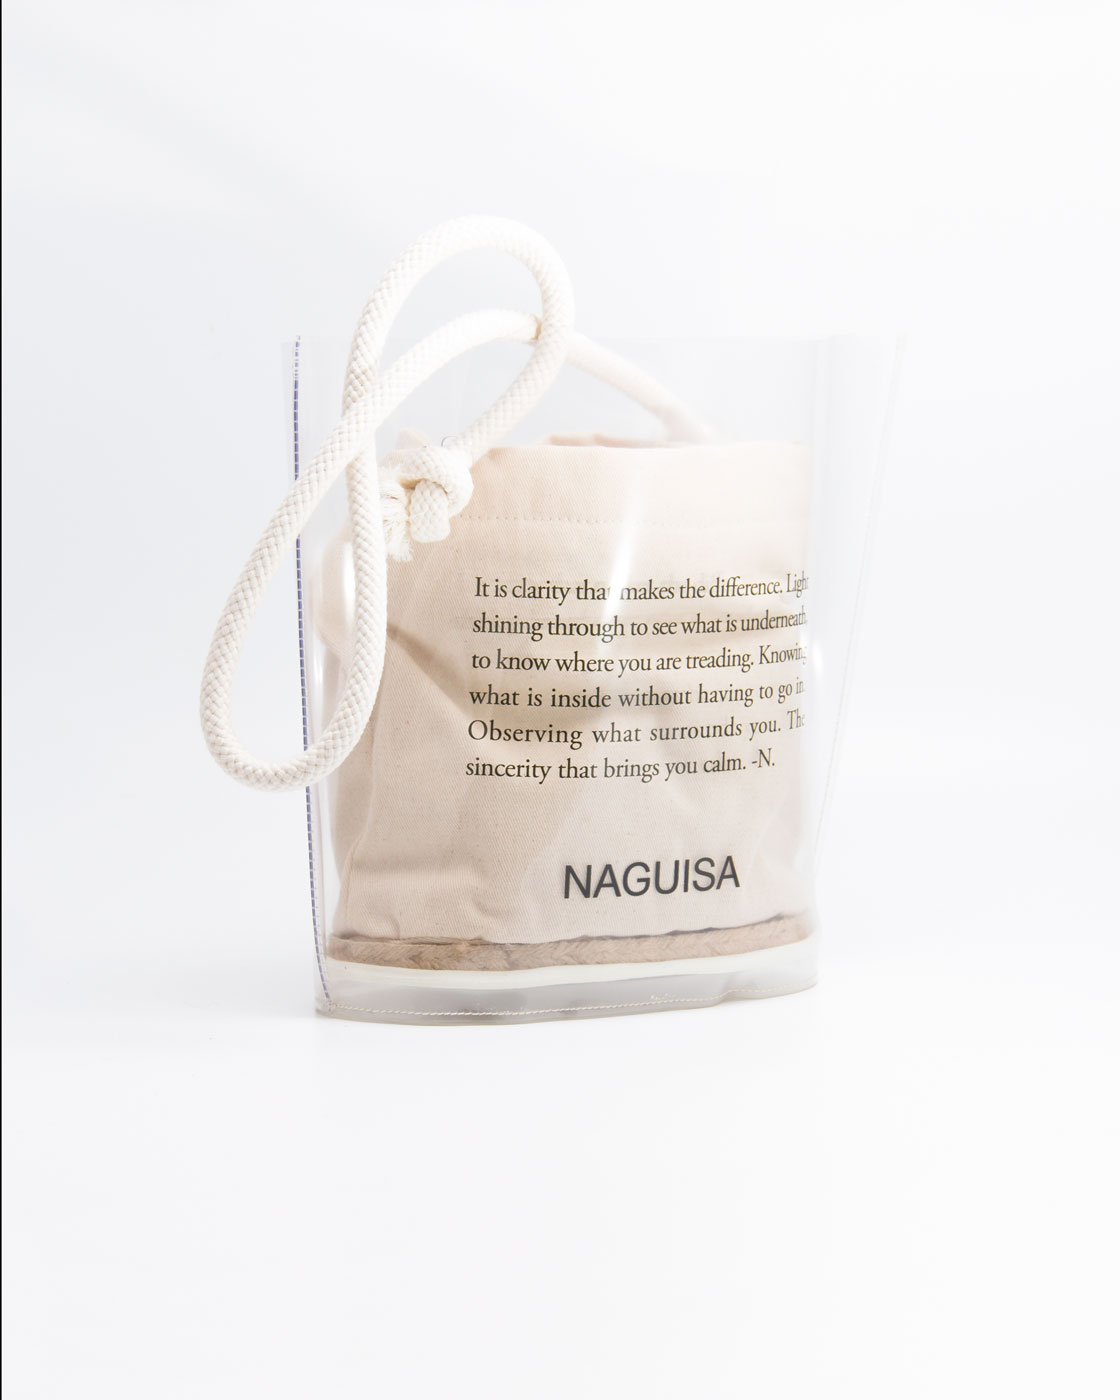 ACCESSORIES#ACCESSORIES. TIMELESS ACCESSORIES TO COMBINE WITH YOUR NAGUISA.